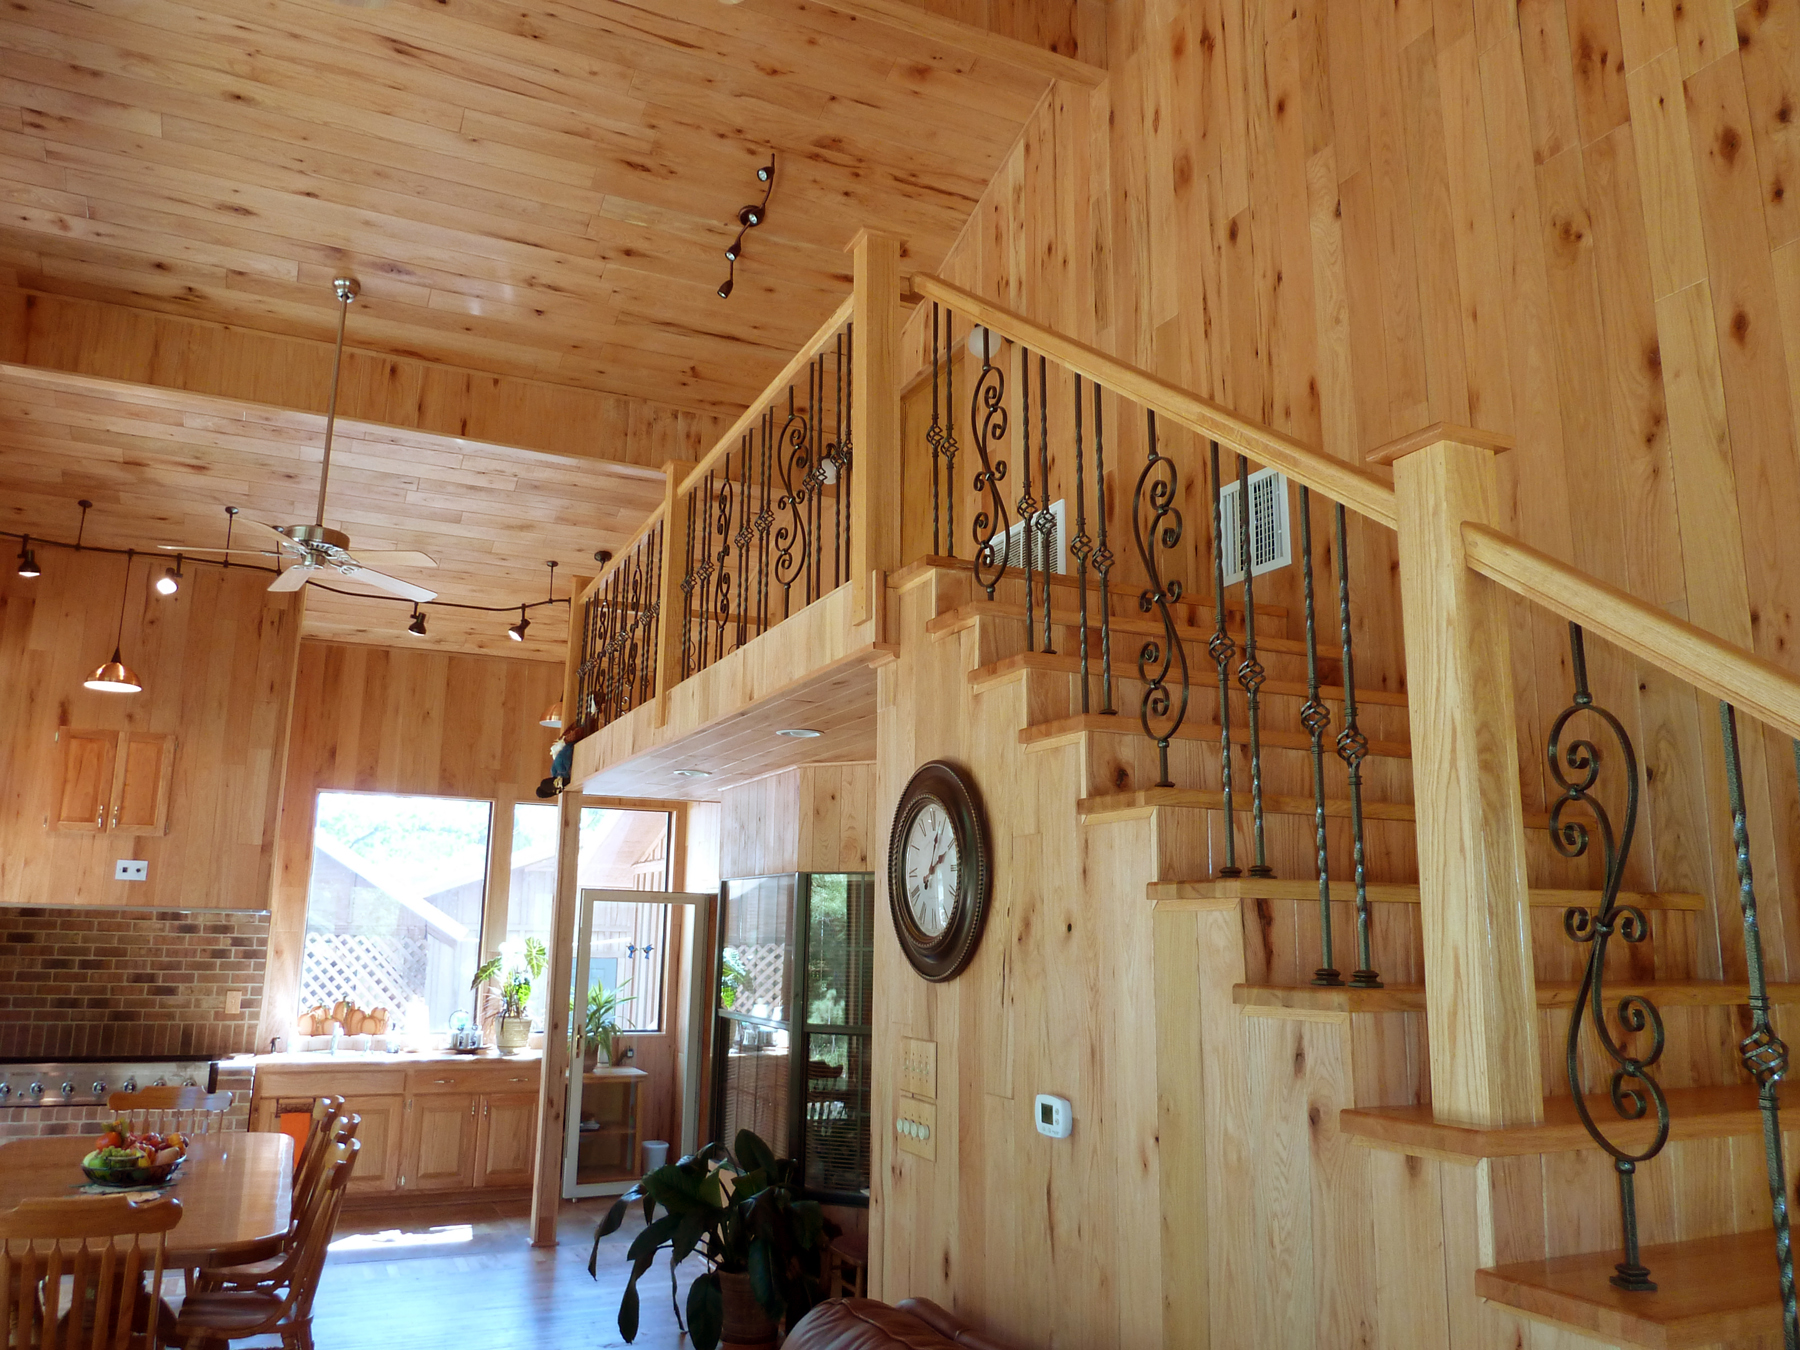 Newport Arkansas Curtner Lumber Company Introduces Ozark Natural Paneling A New Line Of Hardwood Planks For Walls Ceilings And Wainscot That Is Nothing